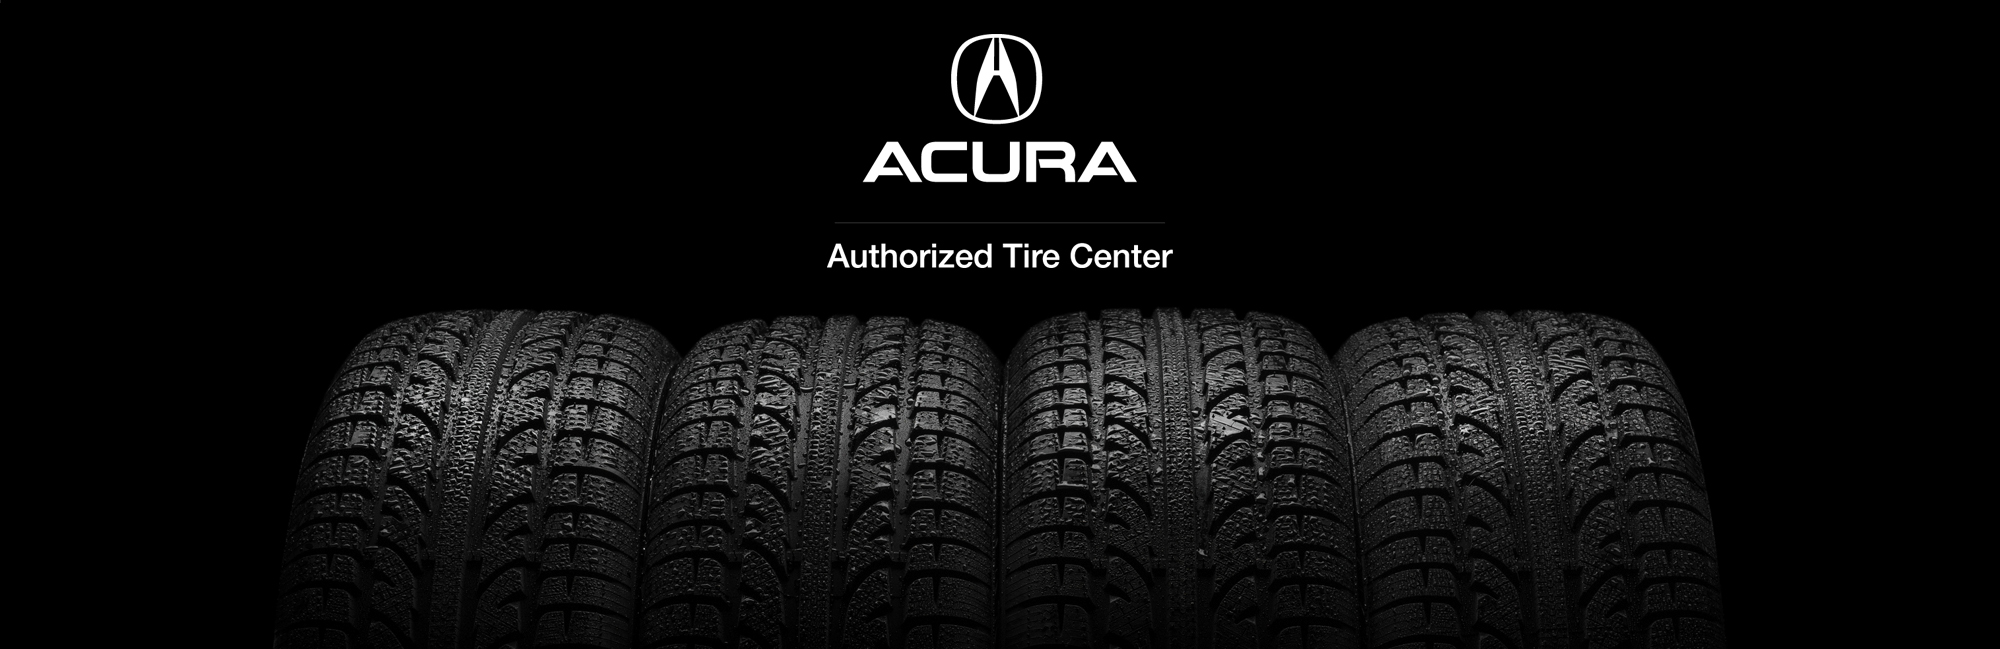 Acura Authorized Tire Center Price Acura Dover DE